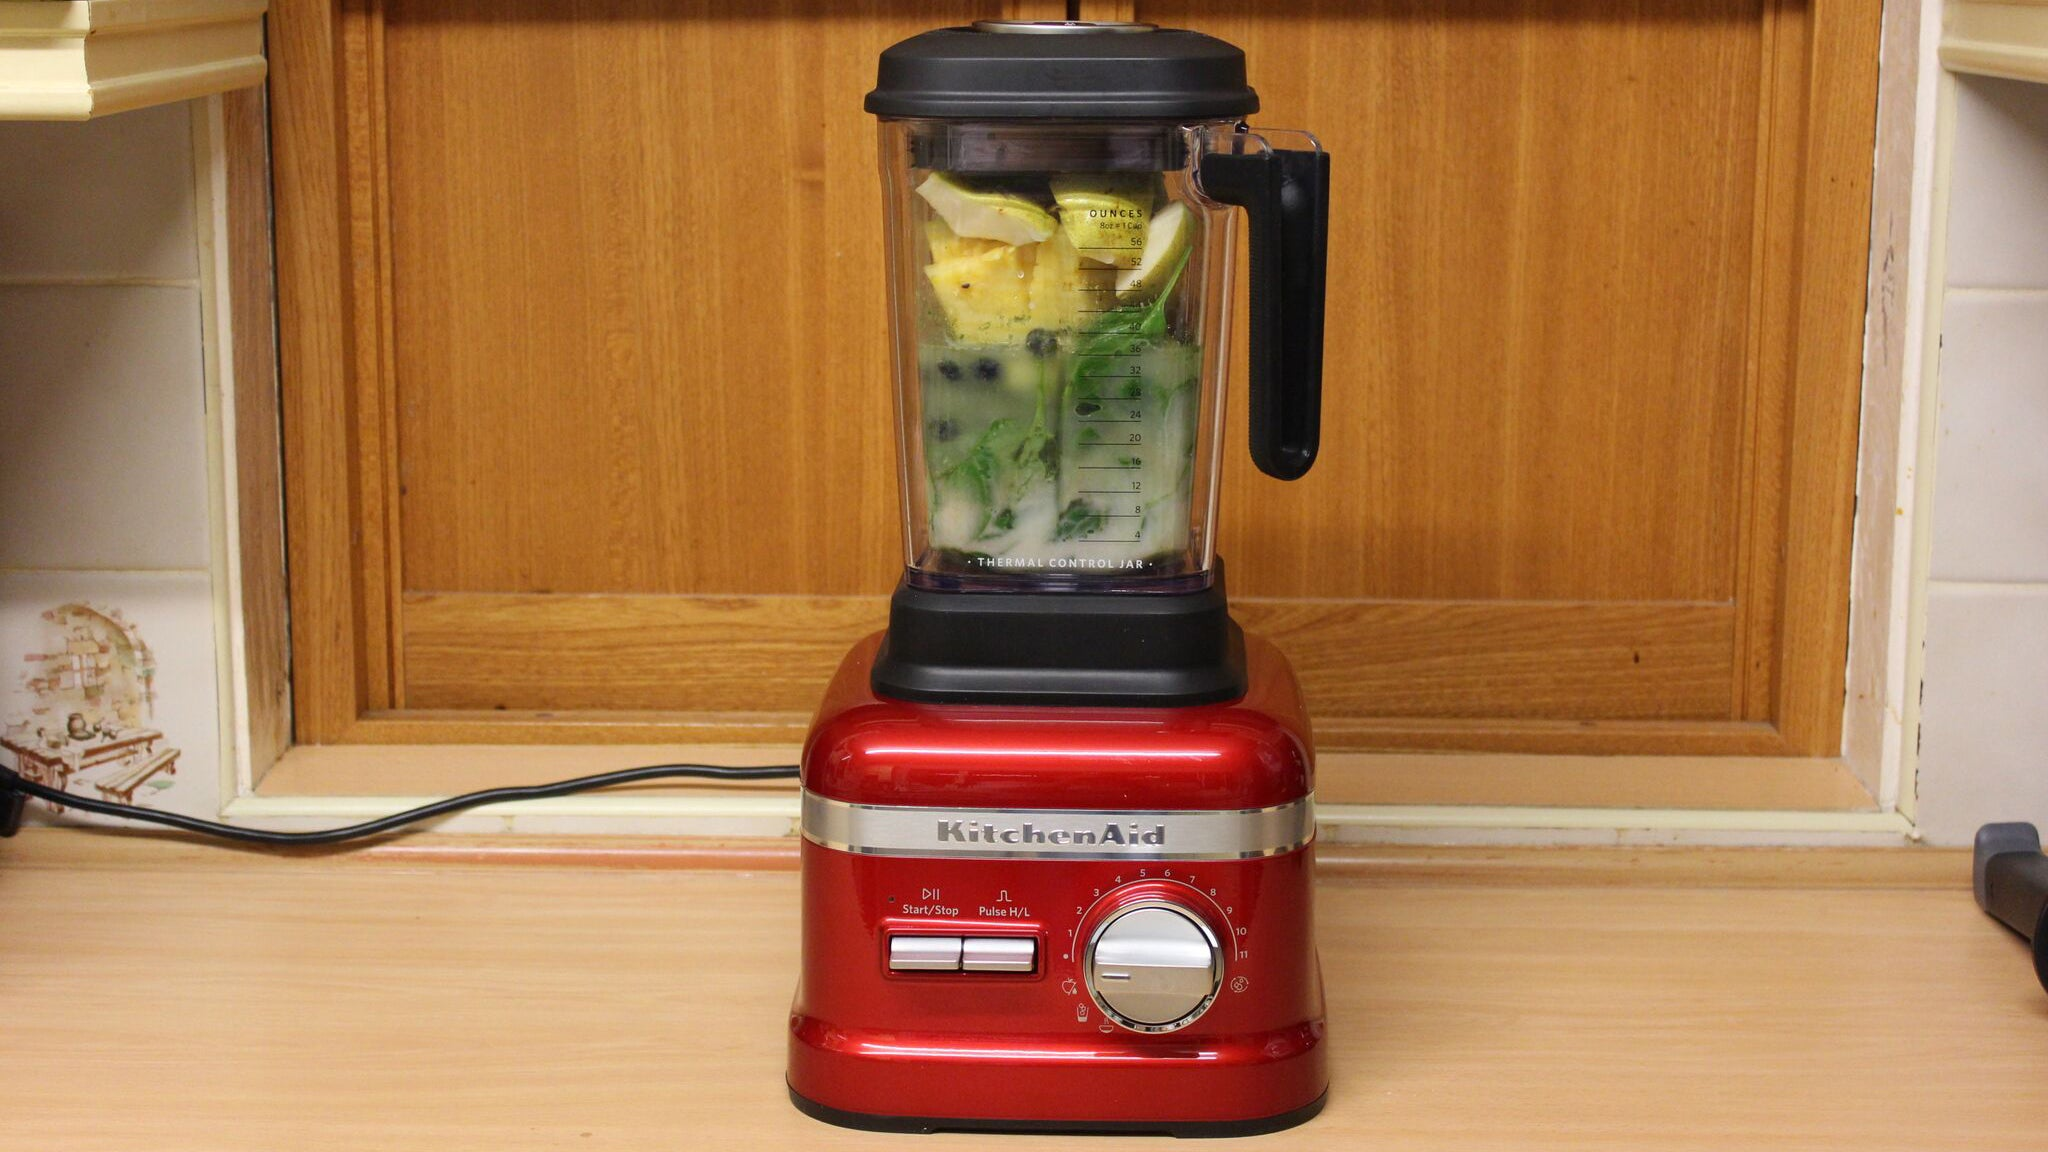 kitchenaid ultra power blender. kitchenaid ultra power blender